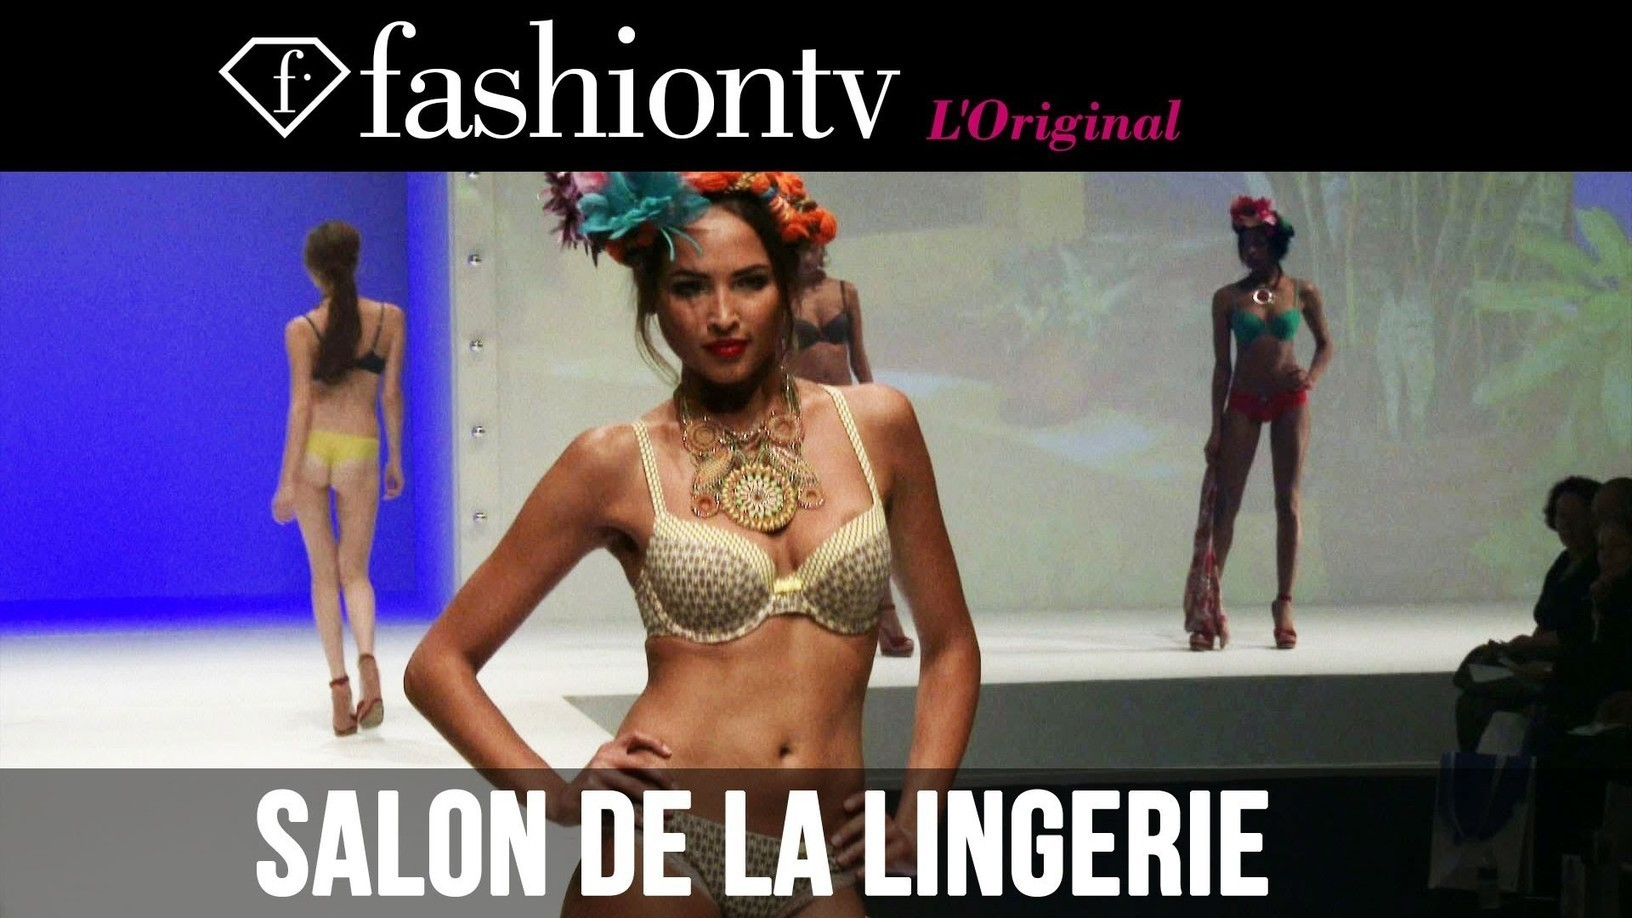 Salon De Lingerie Intimate Chic Lingerie On The Catwalk Salon D